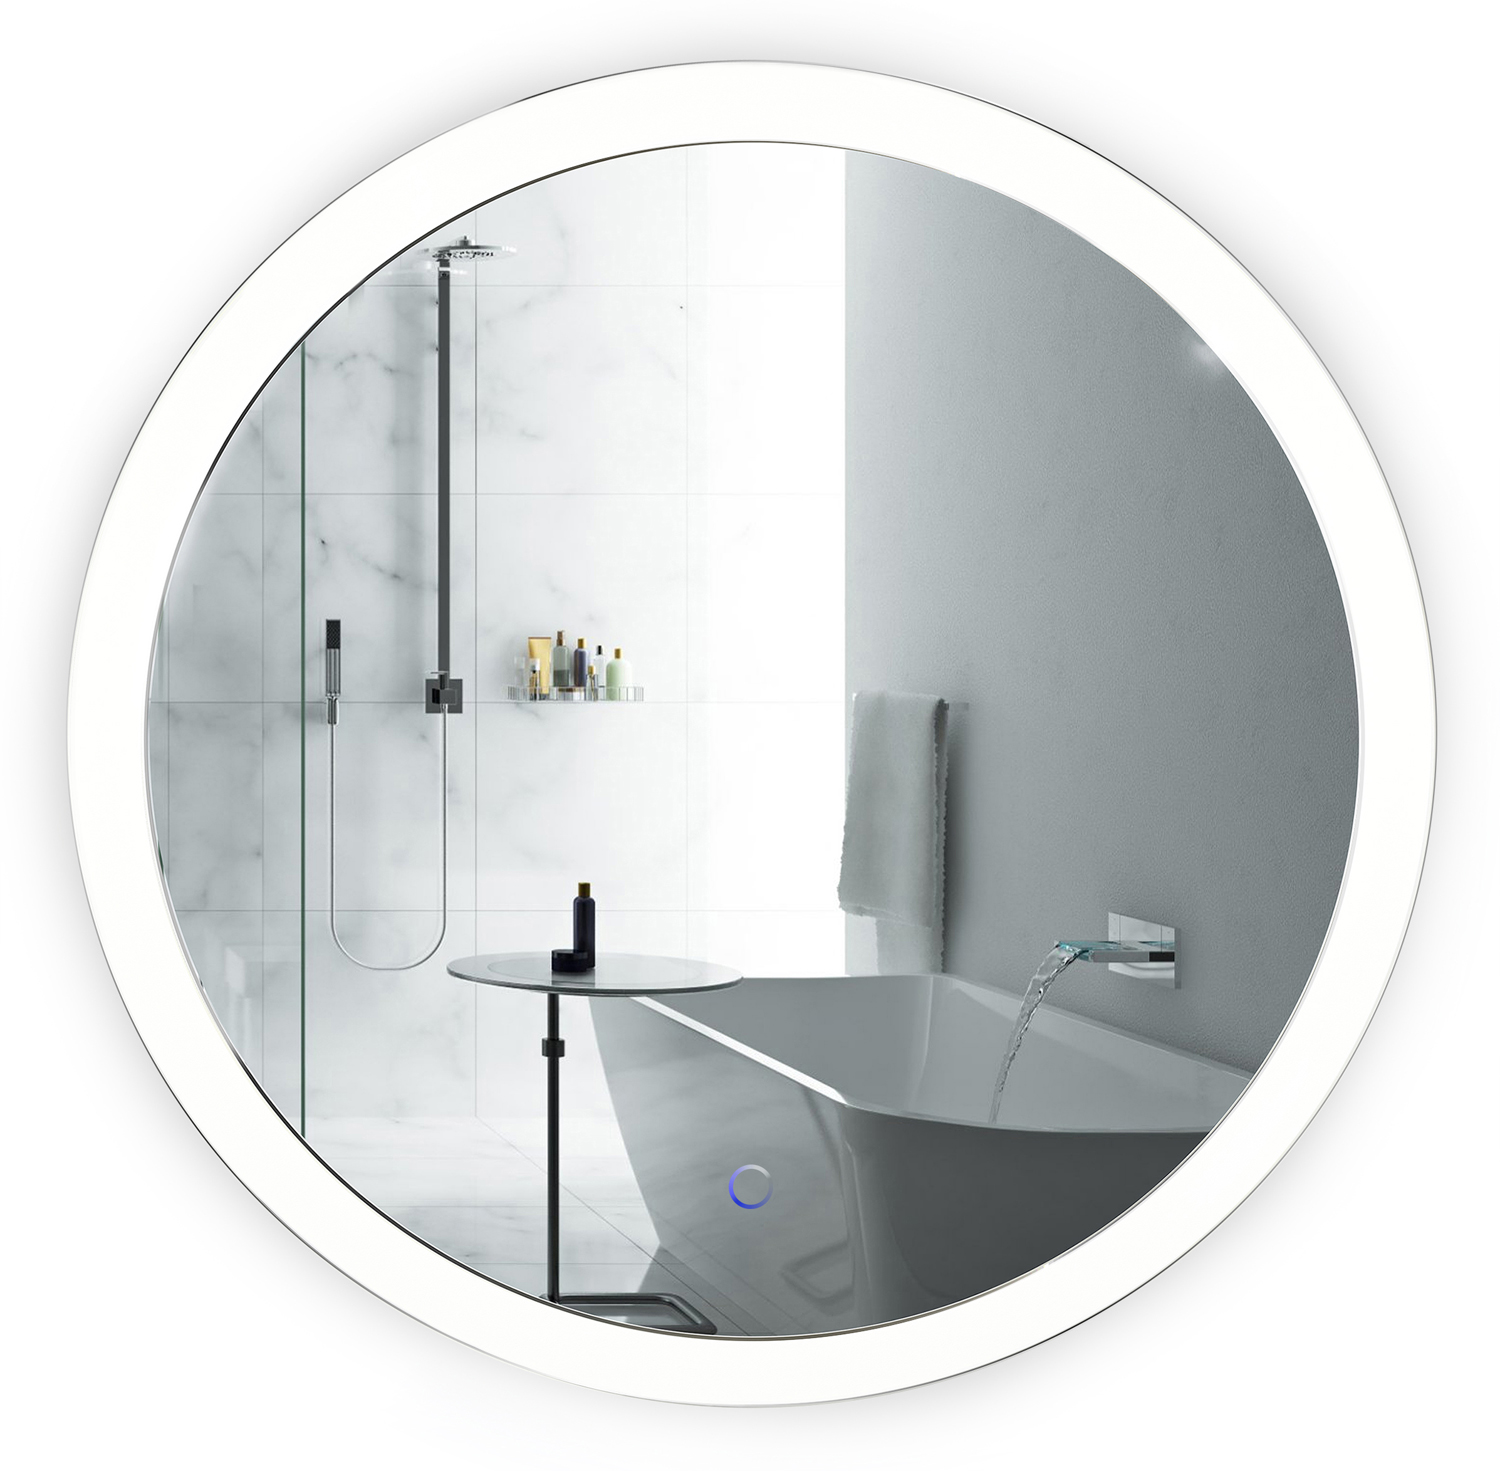 Lighted Bathroom Wall Mirror Large: LED 27″ Round Bathroom Mirror Lighted With Dimmer